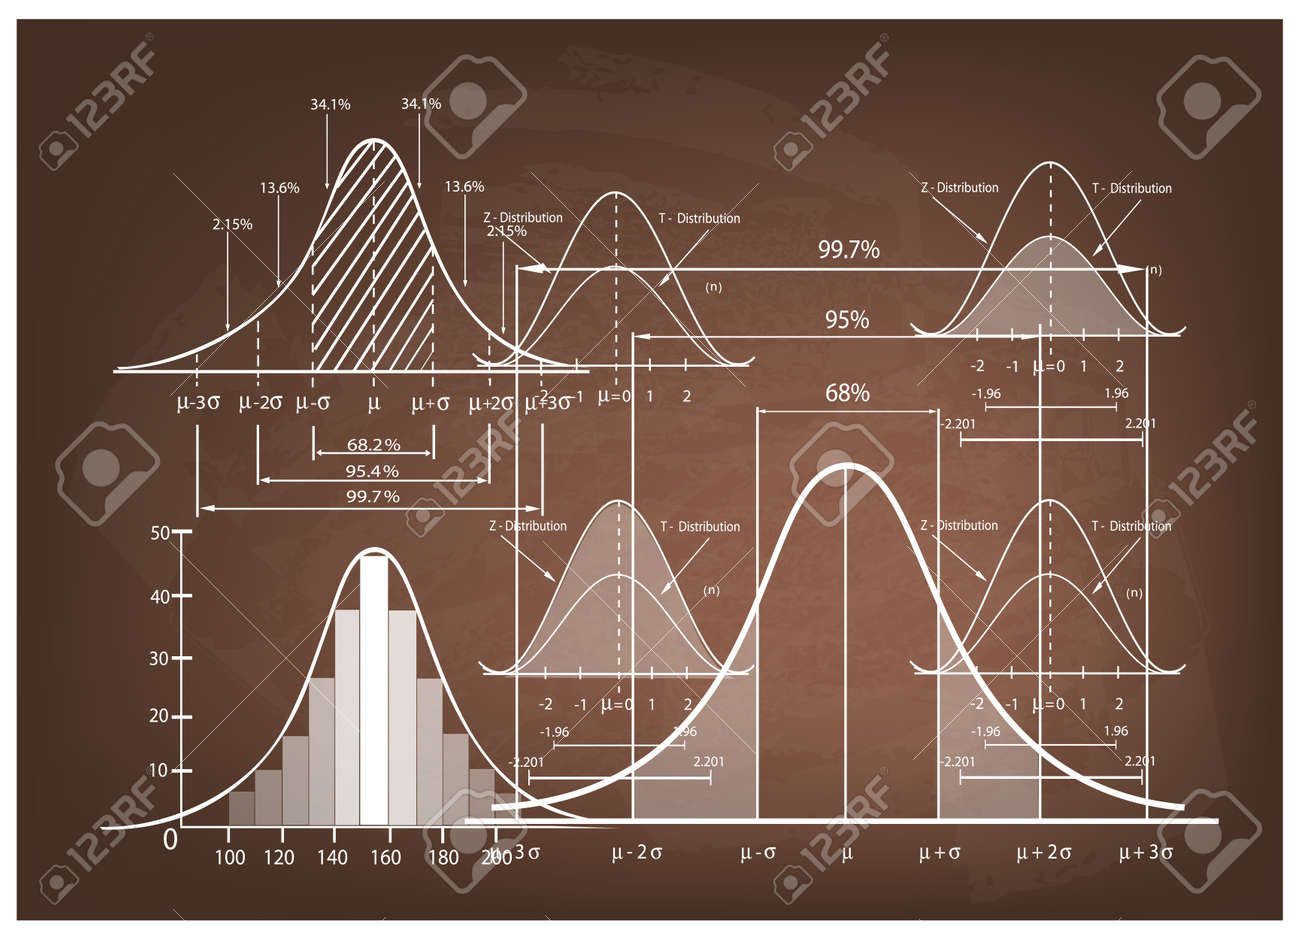 Business and Marketing Concepts, Illustration of Standard Deviation Diagram, Gaussian Bell or Normal Distribution Curve Population Pyramid Chart for Sample Size Determination. - 61524339